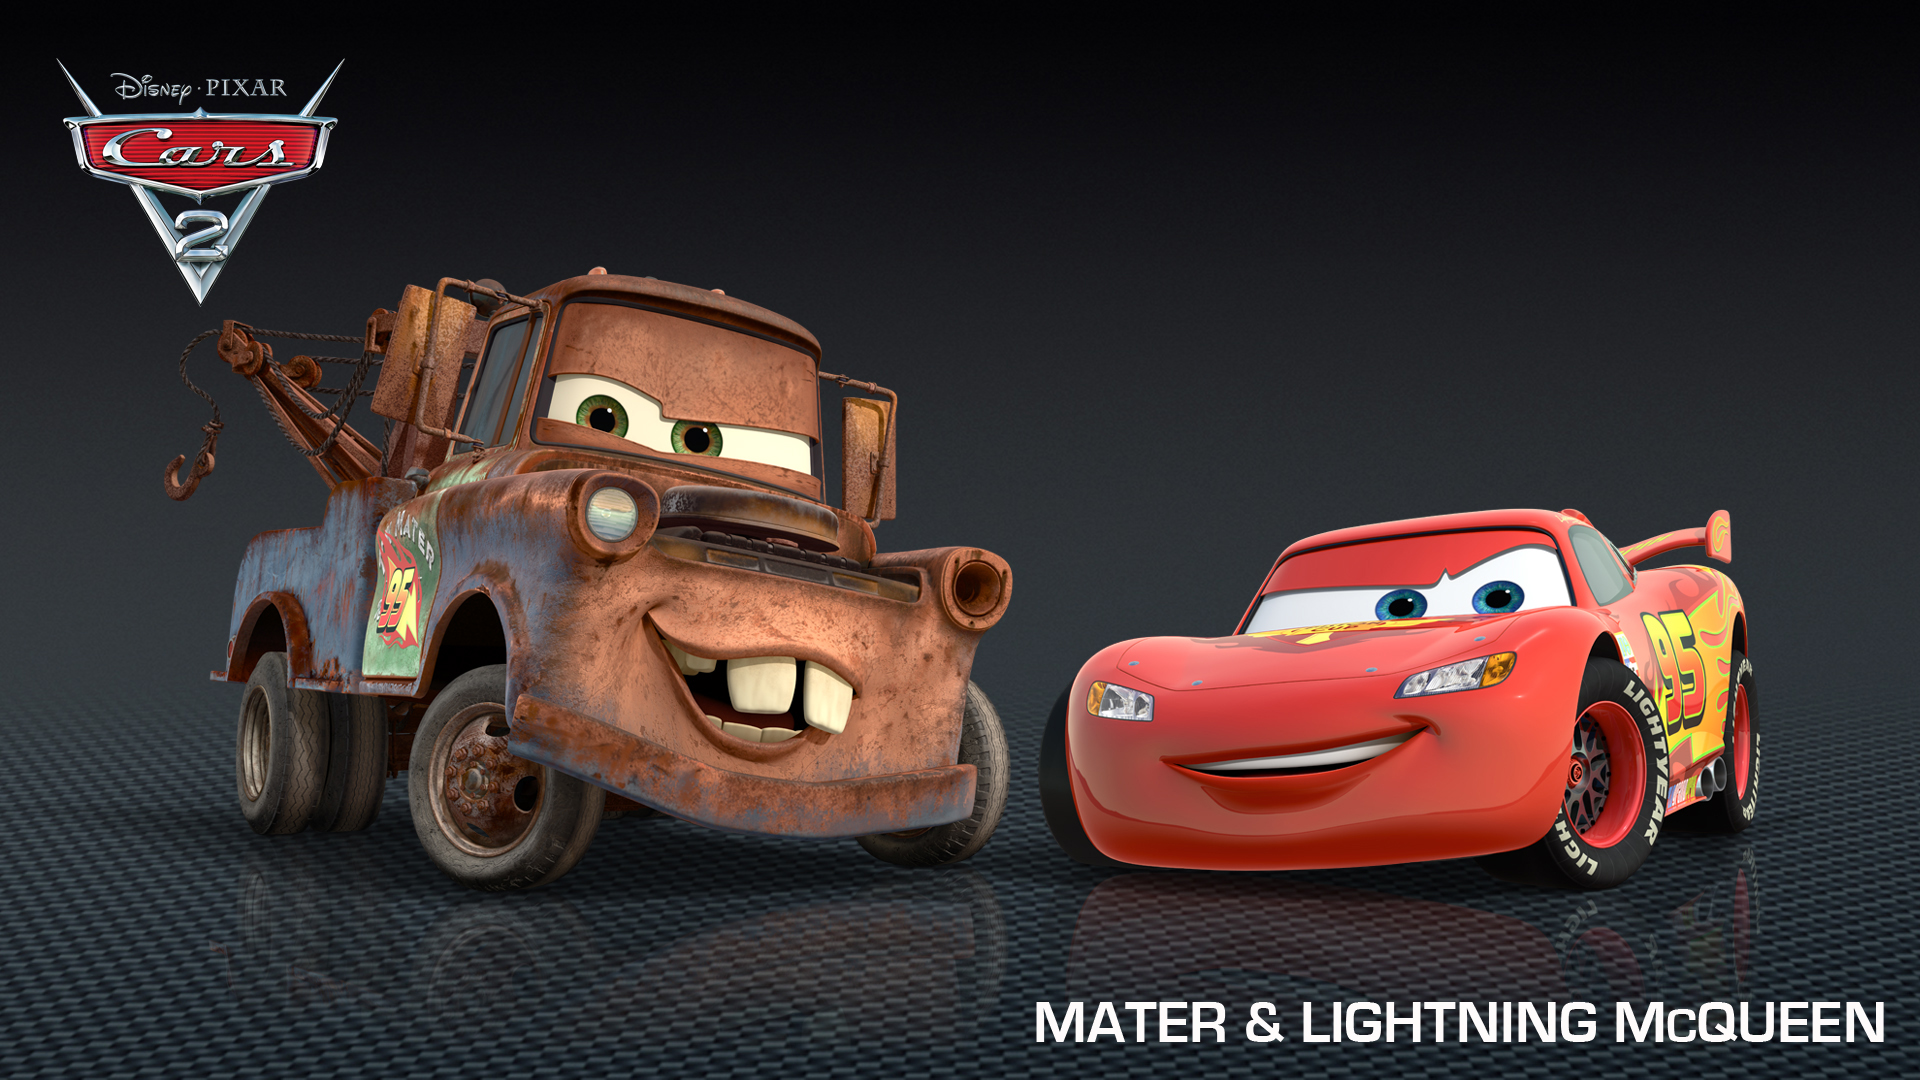 More Cars 2 Character Images, Descriptions, Video